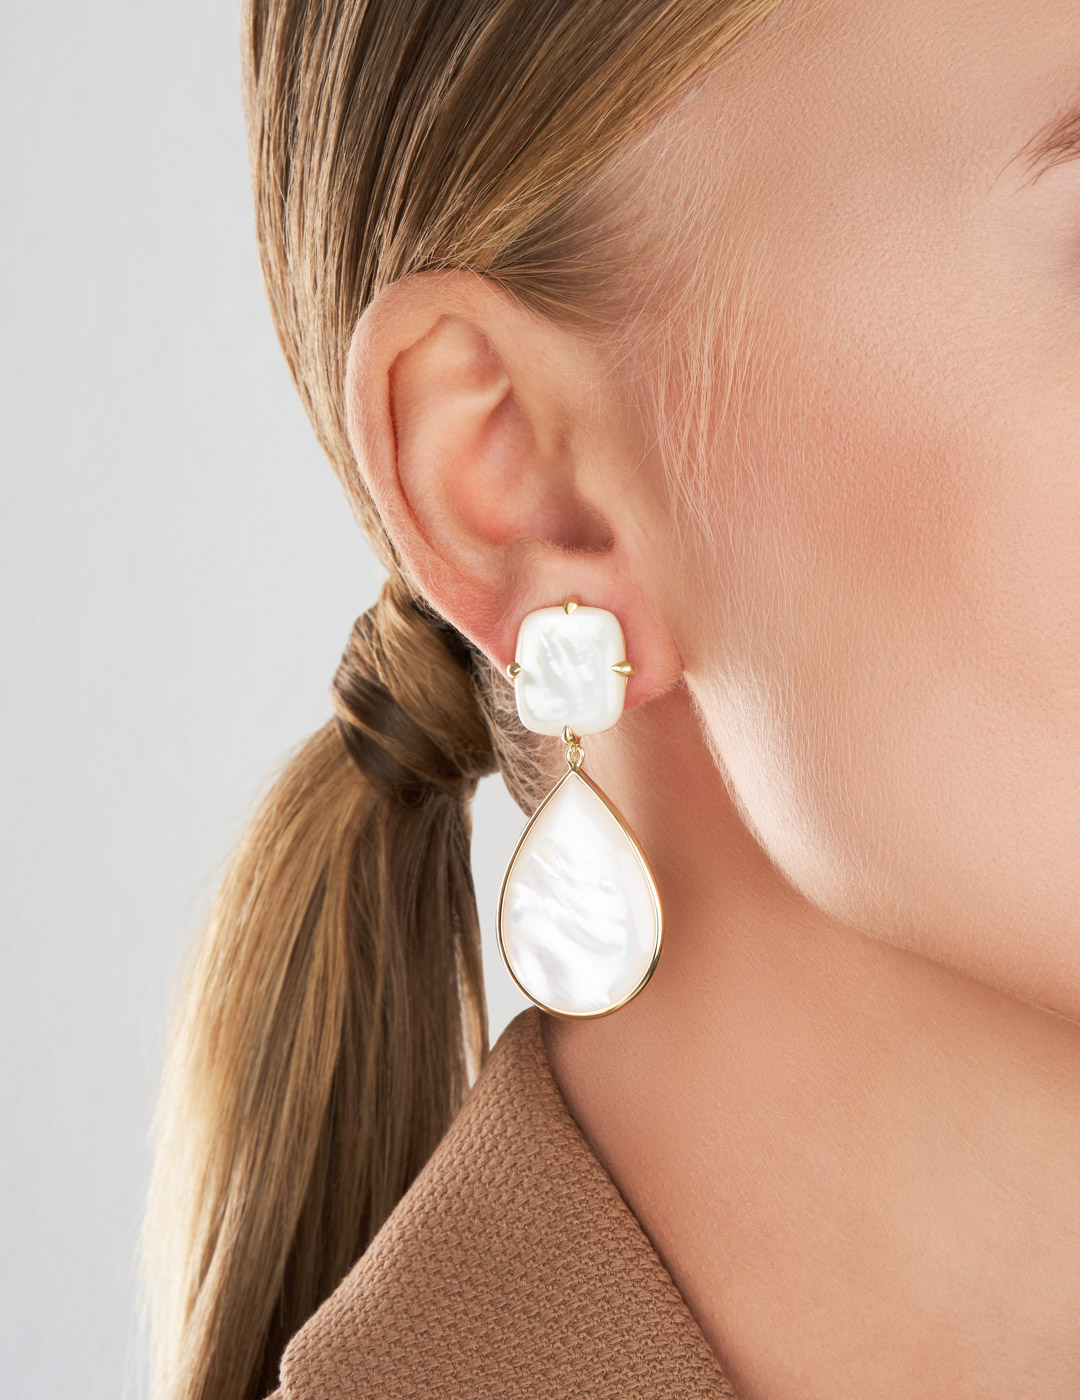 mish_products_earrings_Roadster-MOP-ER-2